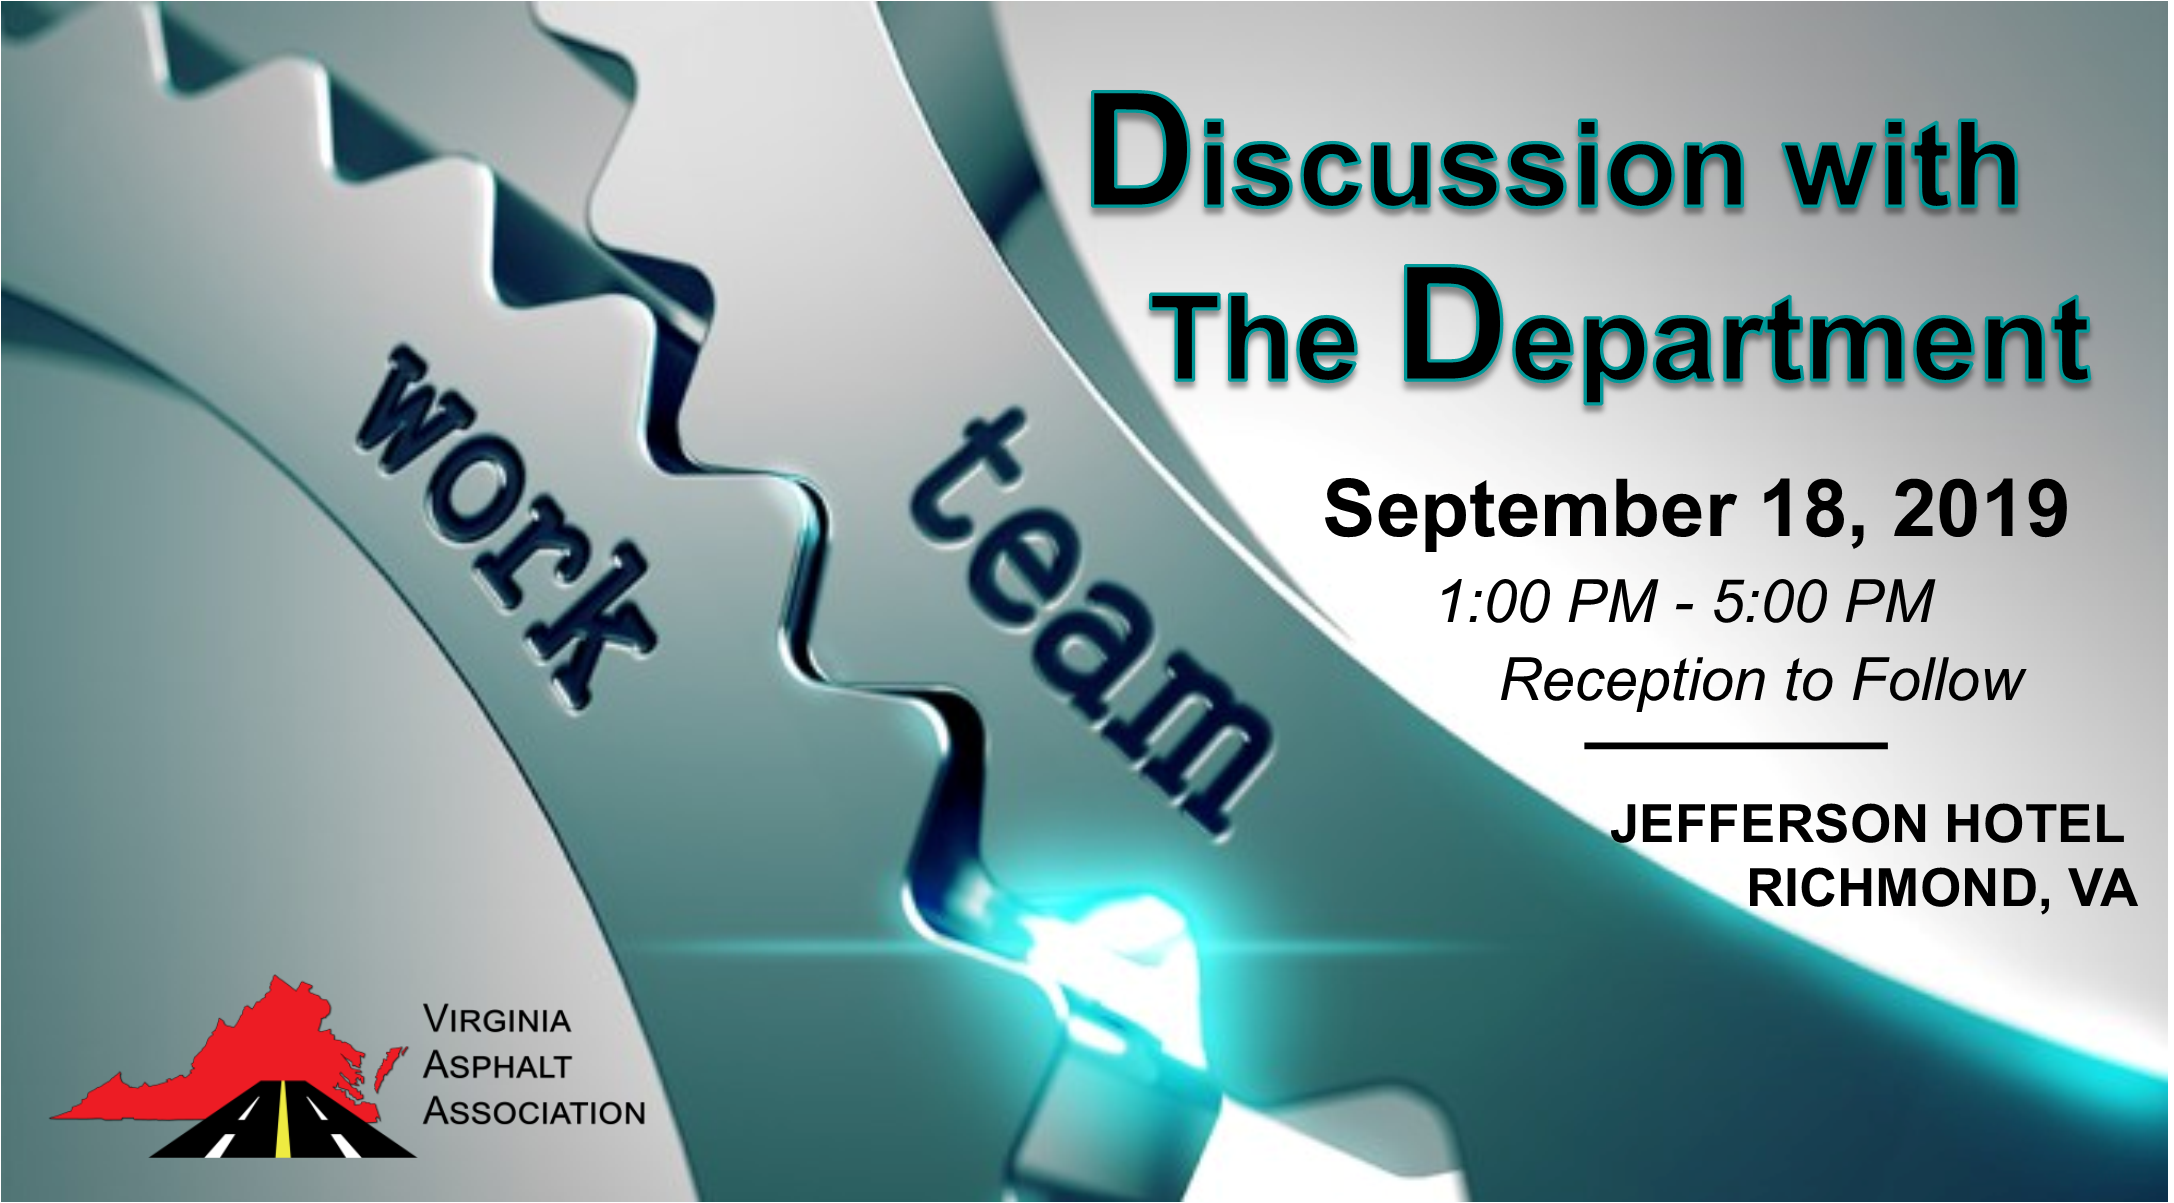 Discussion With The Department